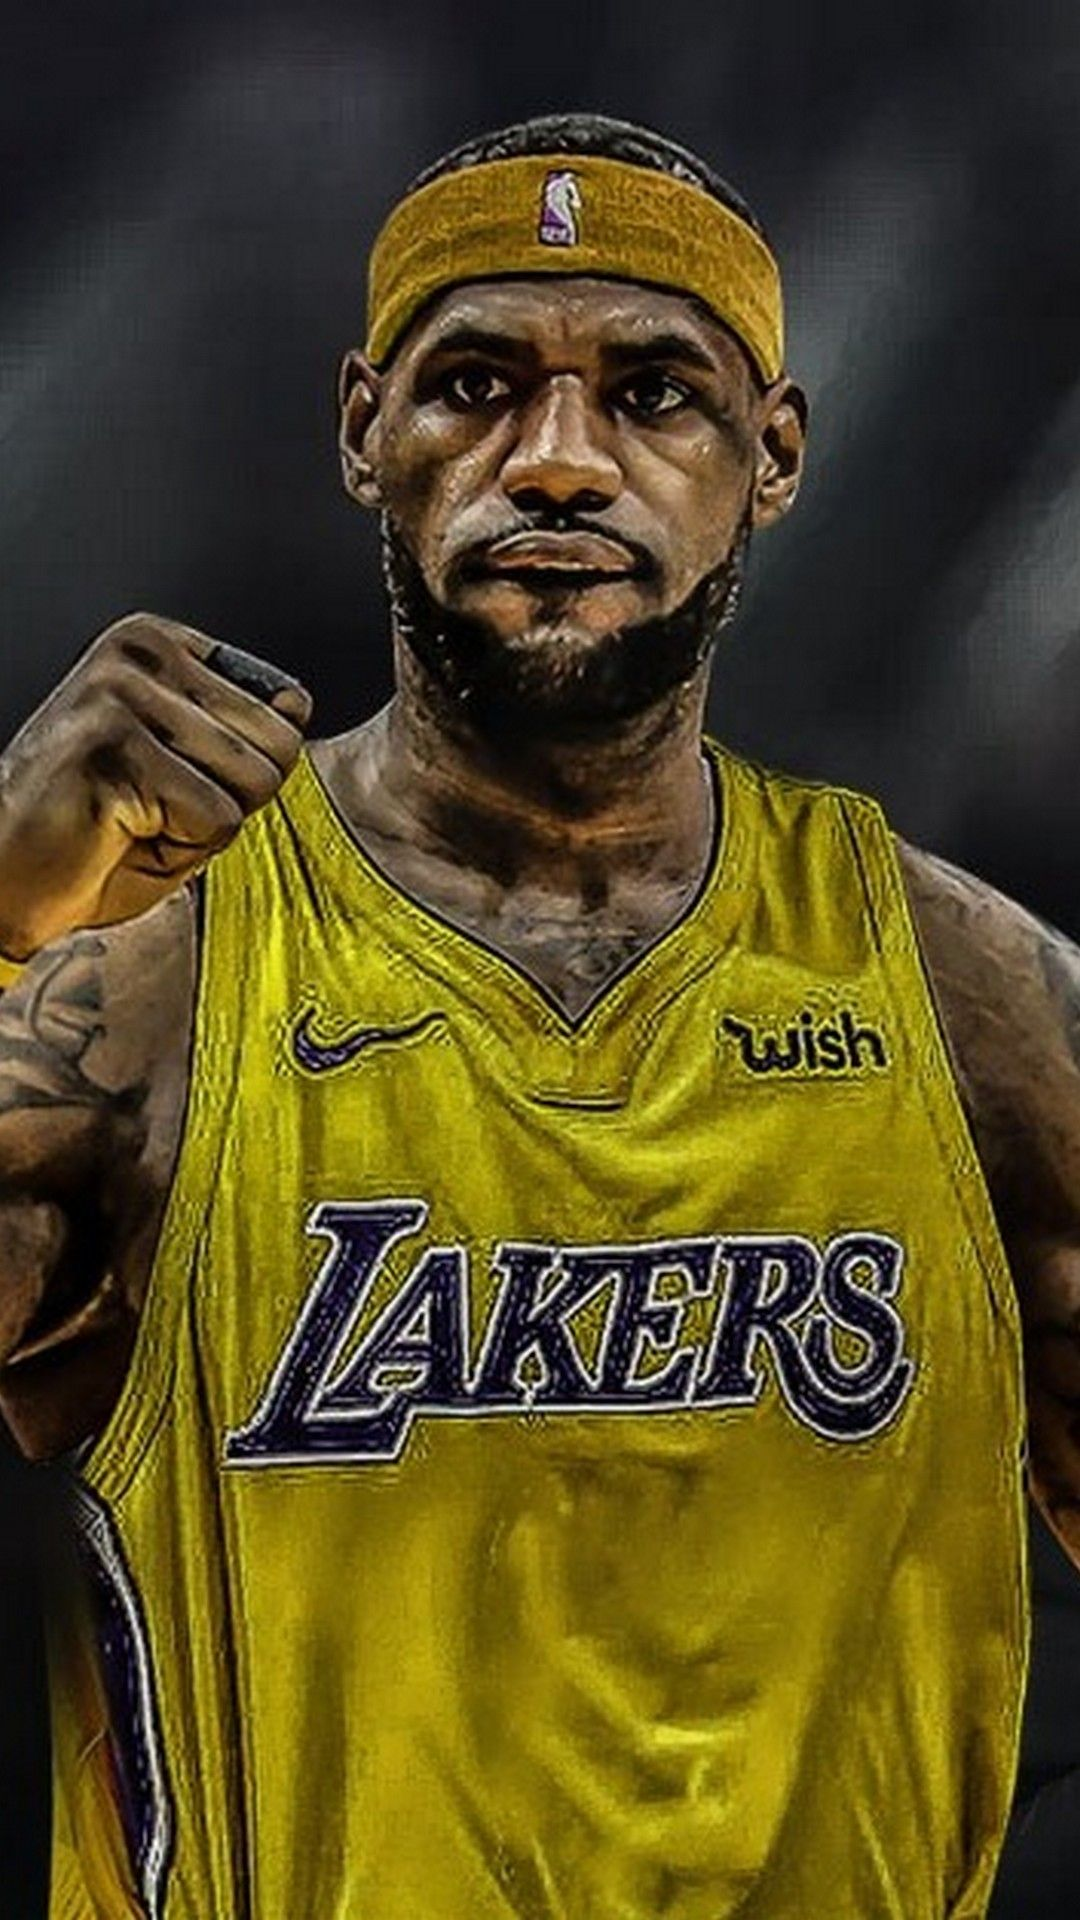 Lebron James Image » Hupages » Download Iphone Wallpapers